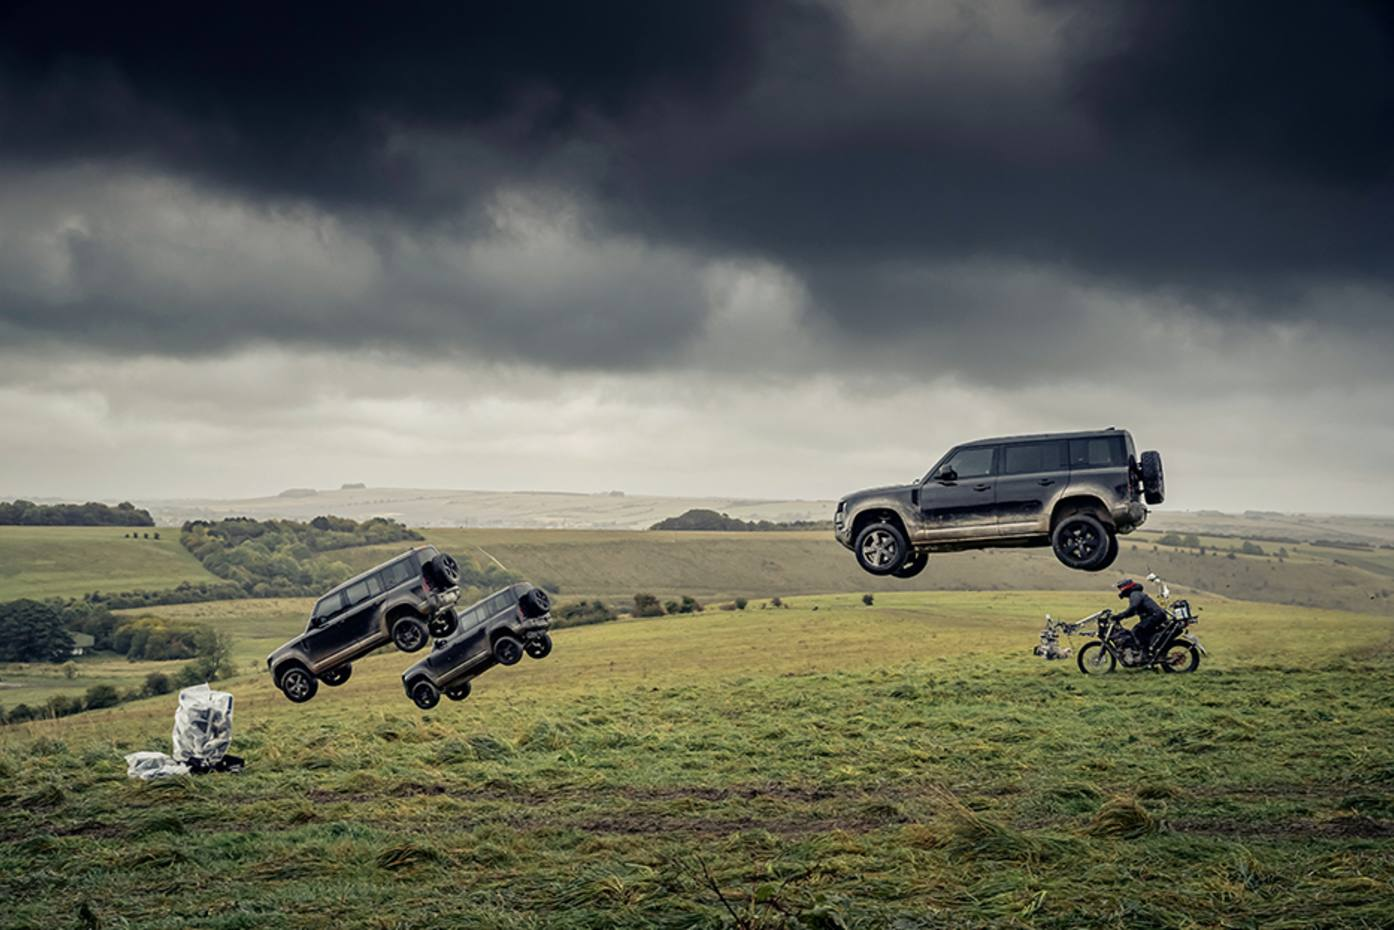 The new Defender in action during filming forupcoming Bond film,No Time to Die